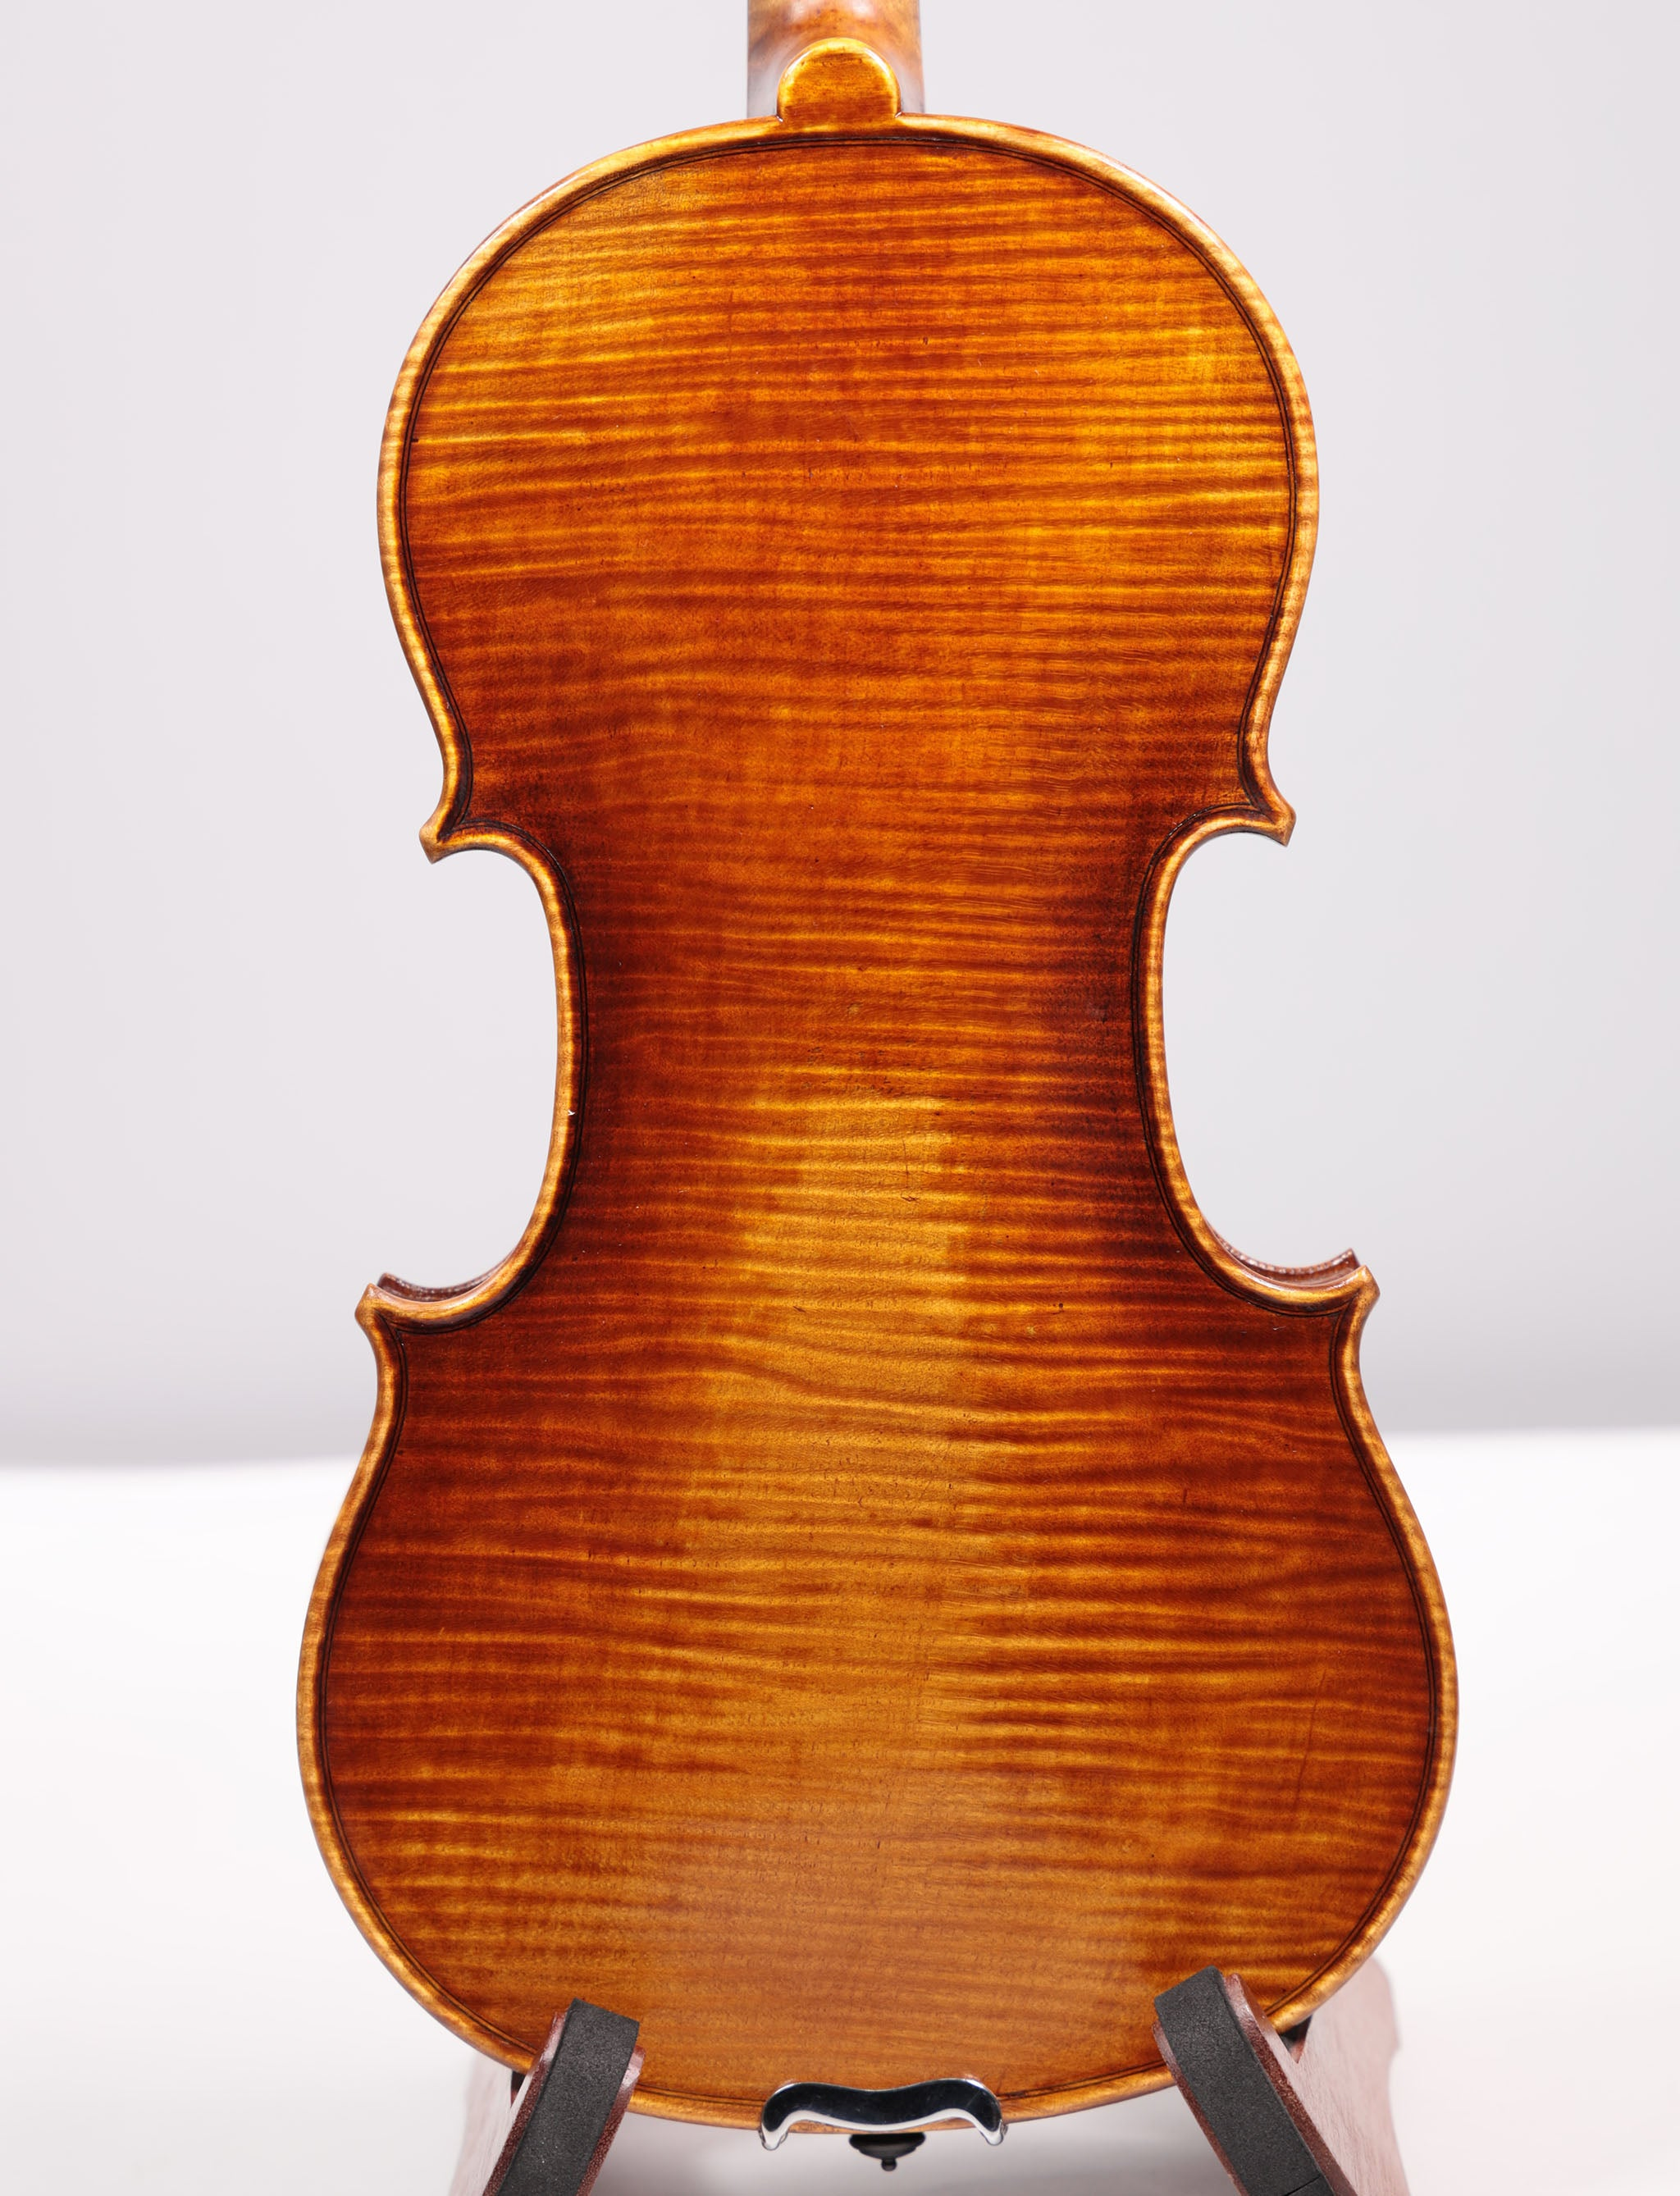 Fiddlershop Full Size Violin (No. VN114)